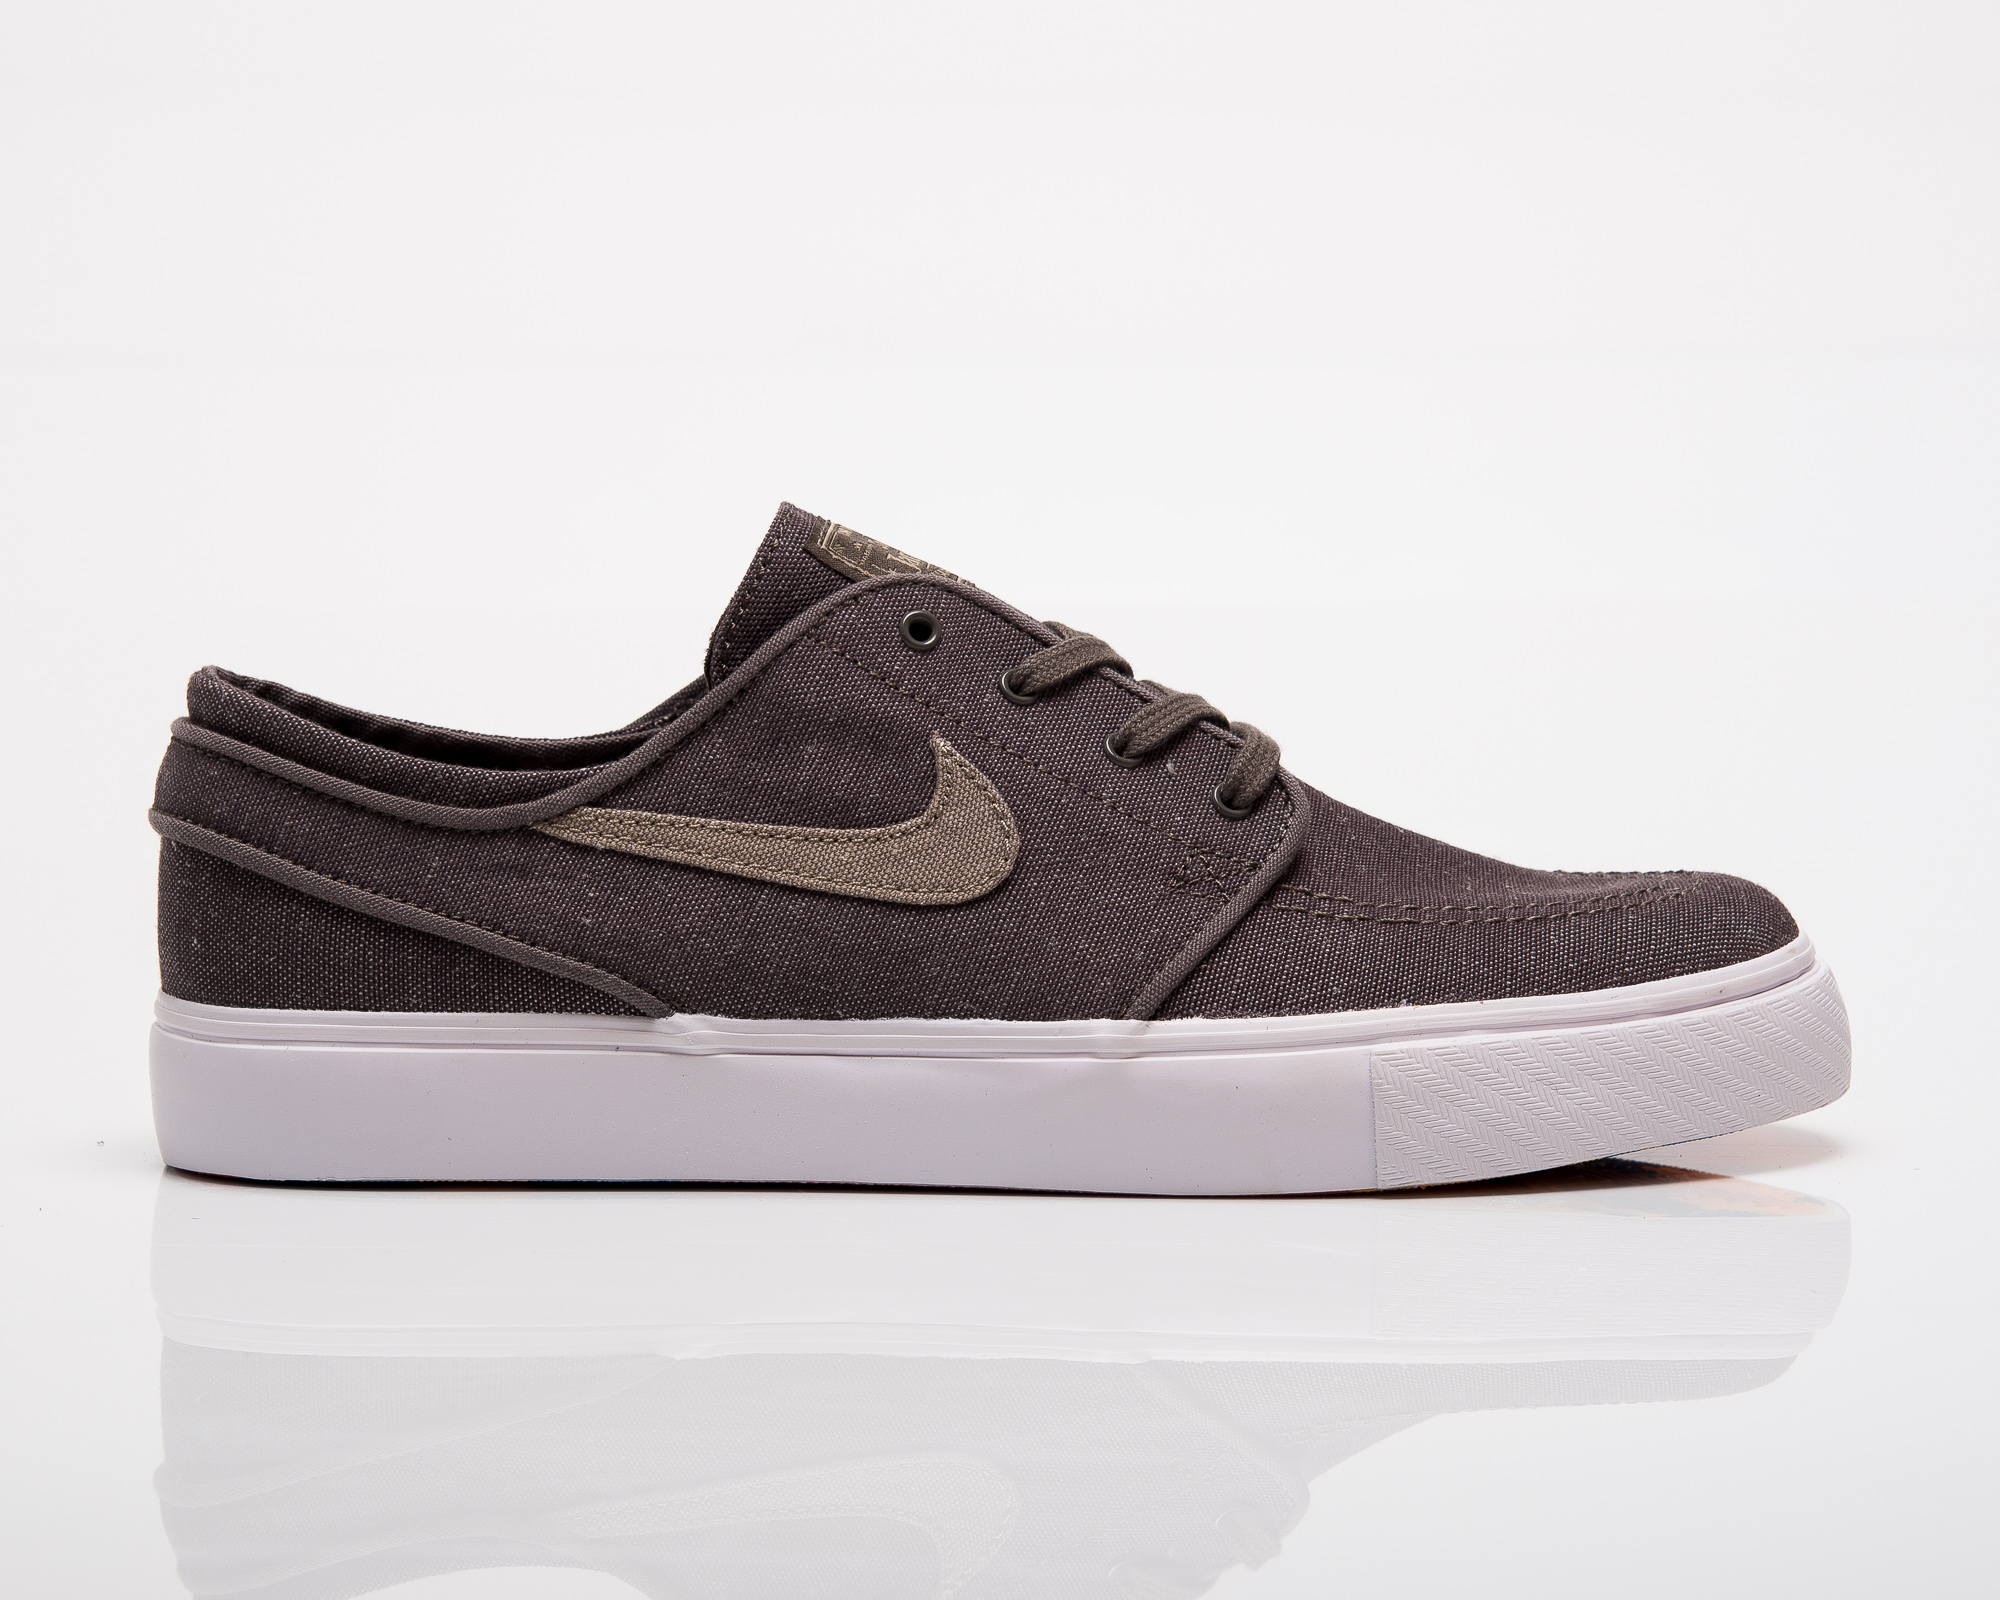 f25551701911 Nike SB Zoom Stefan Janoski Canvas Deconstructed - Shoes Casual ...